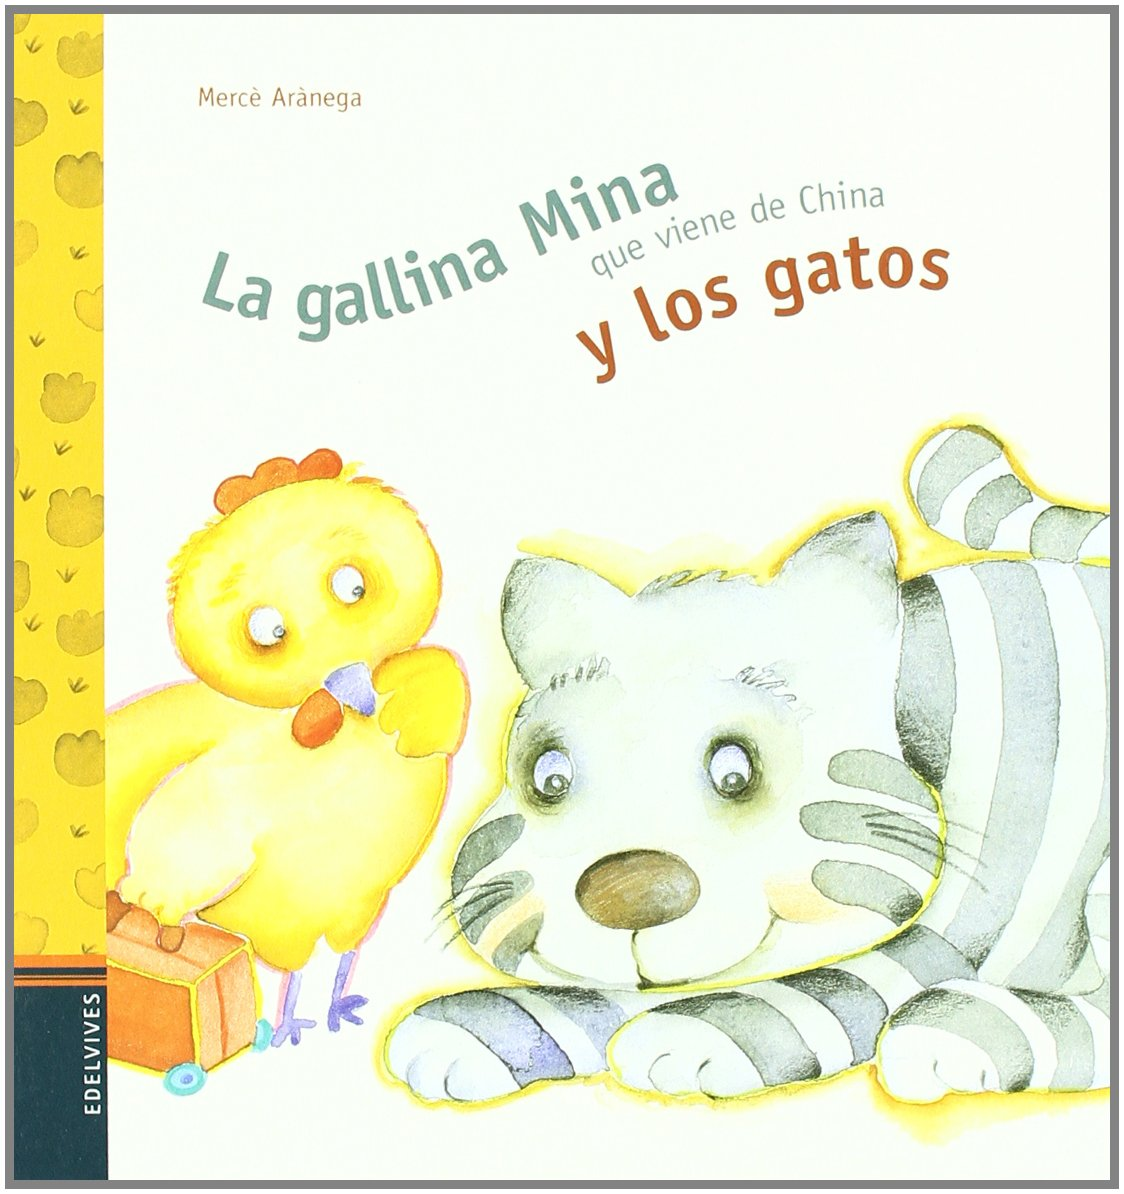 La gallina Mina que viene de China y los gatos (Spanish) Hardcover – January 1, 1900